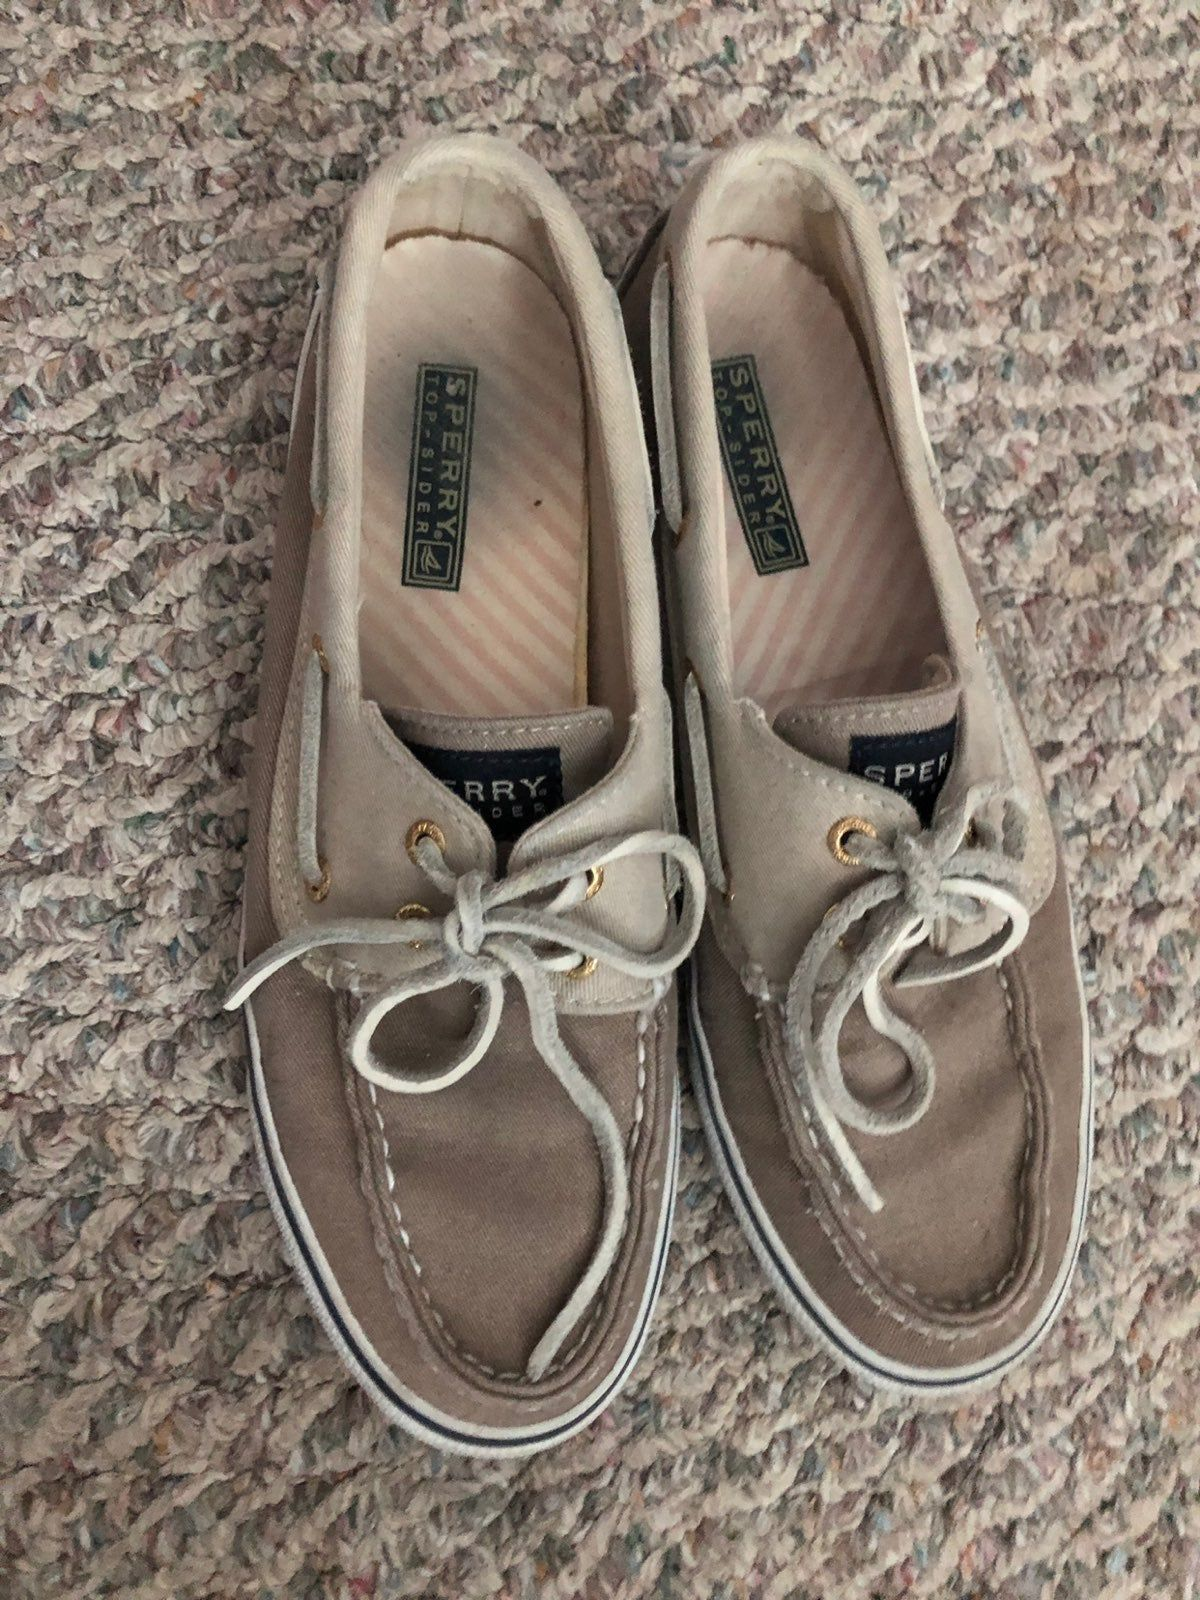 Sperry boat shoes, Sperry loafers, Boat